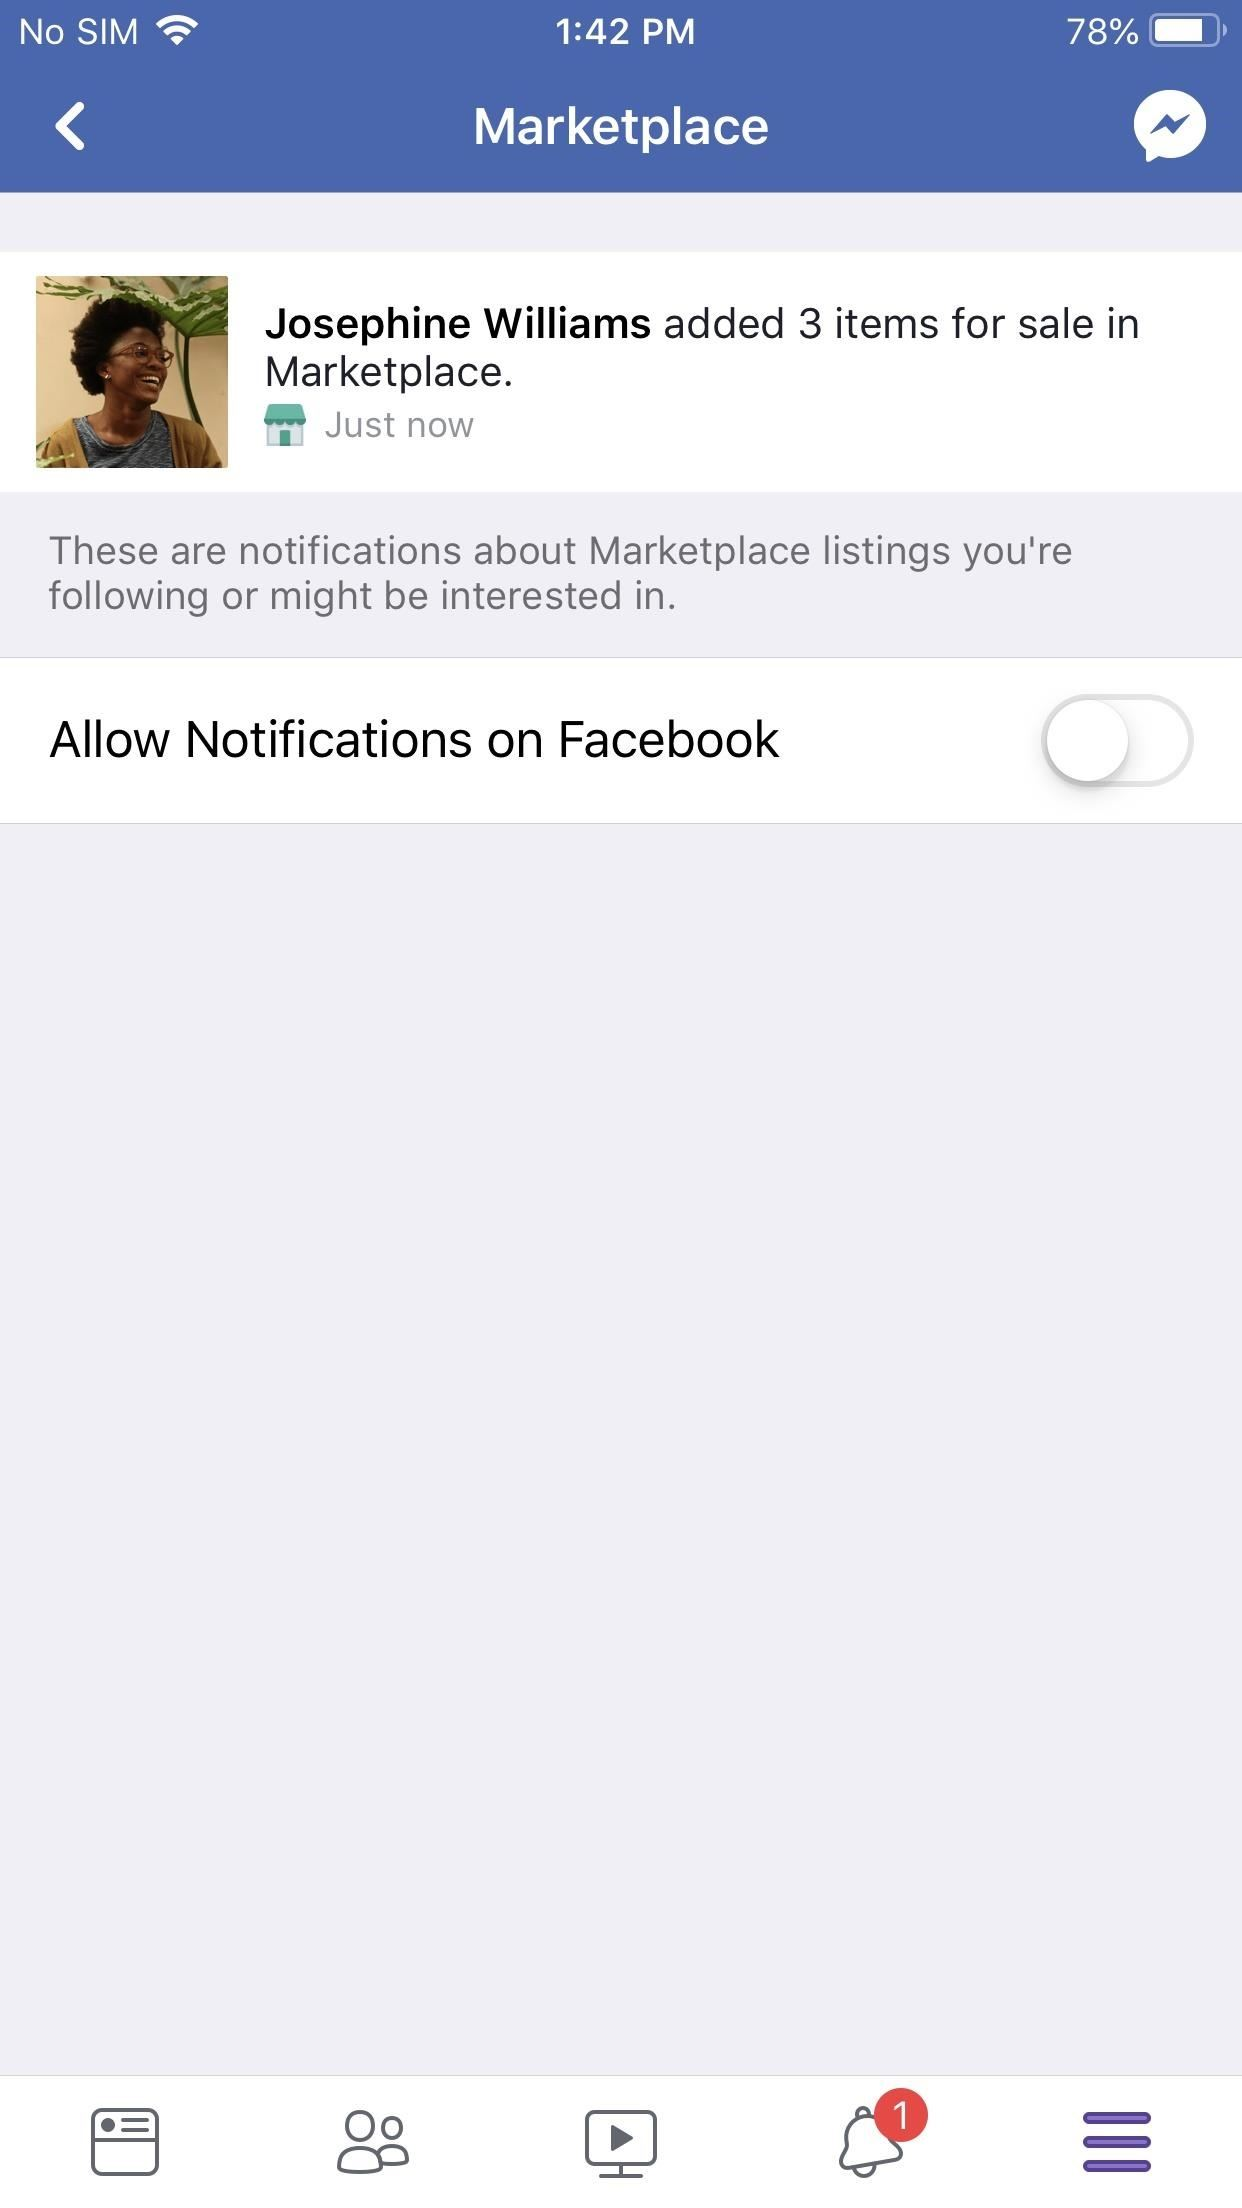 How to Stop Facebook's Annoying Marketplace Notifications